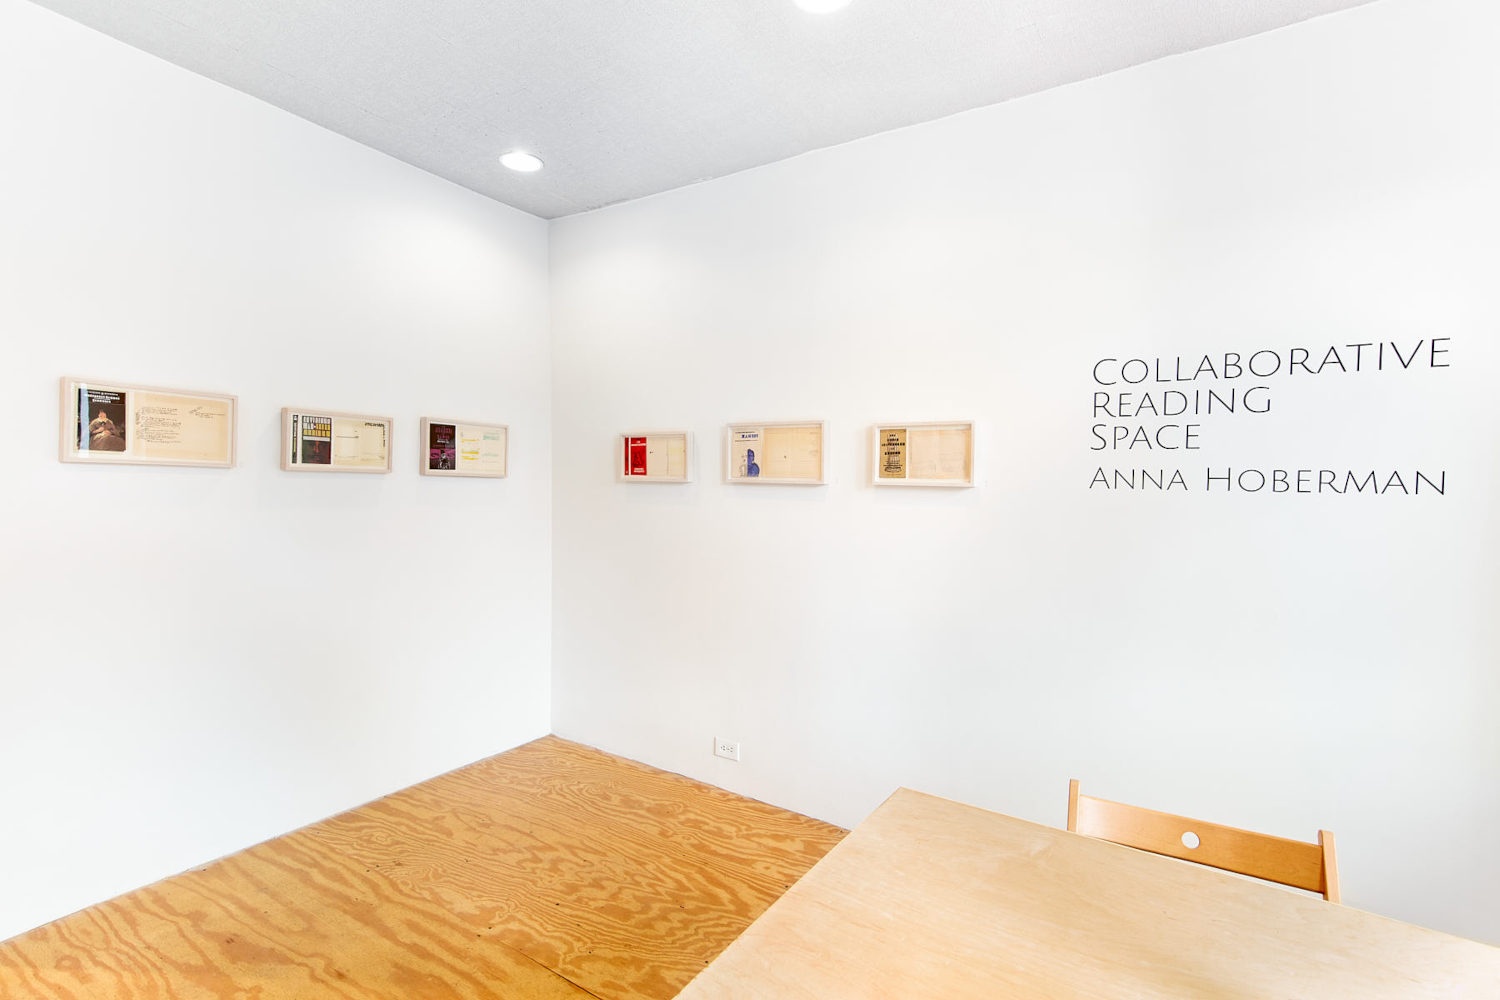 anna hoberman, collaborative reading space at stand4 gallery, curated by john ros. april-may 2021. multiprocess print exhibition with collaborative library archive community engagement component.